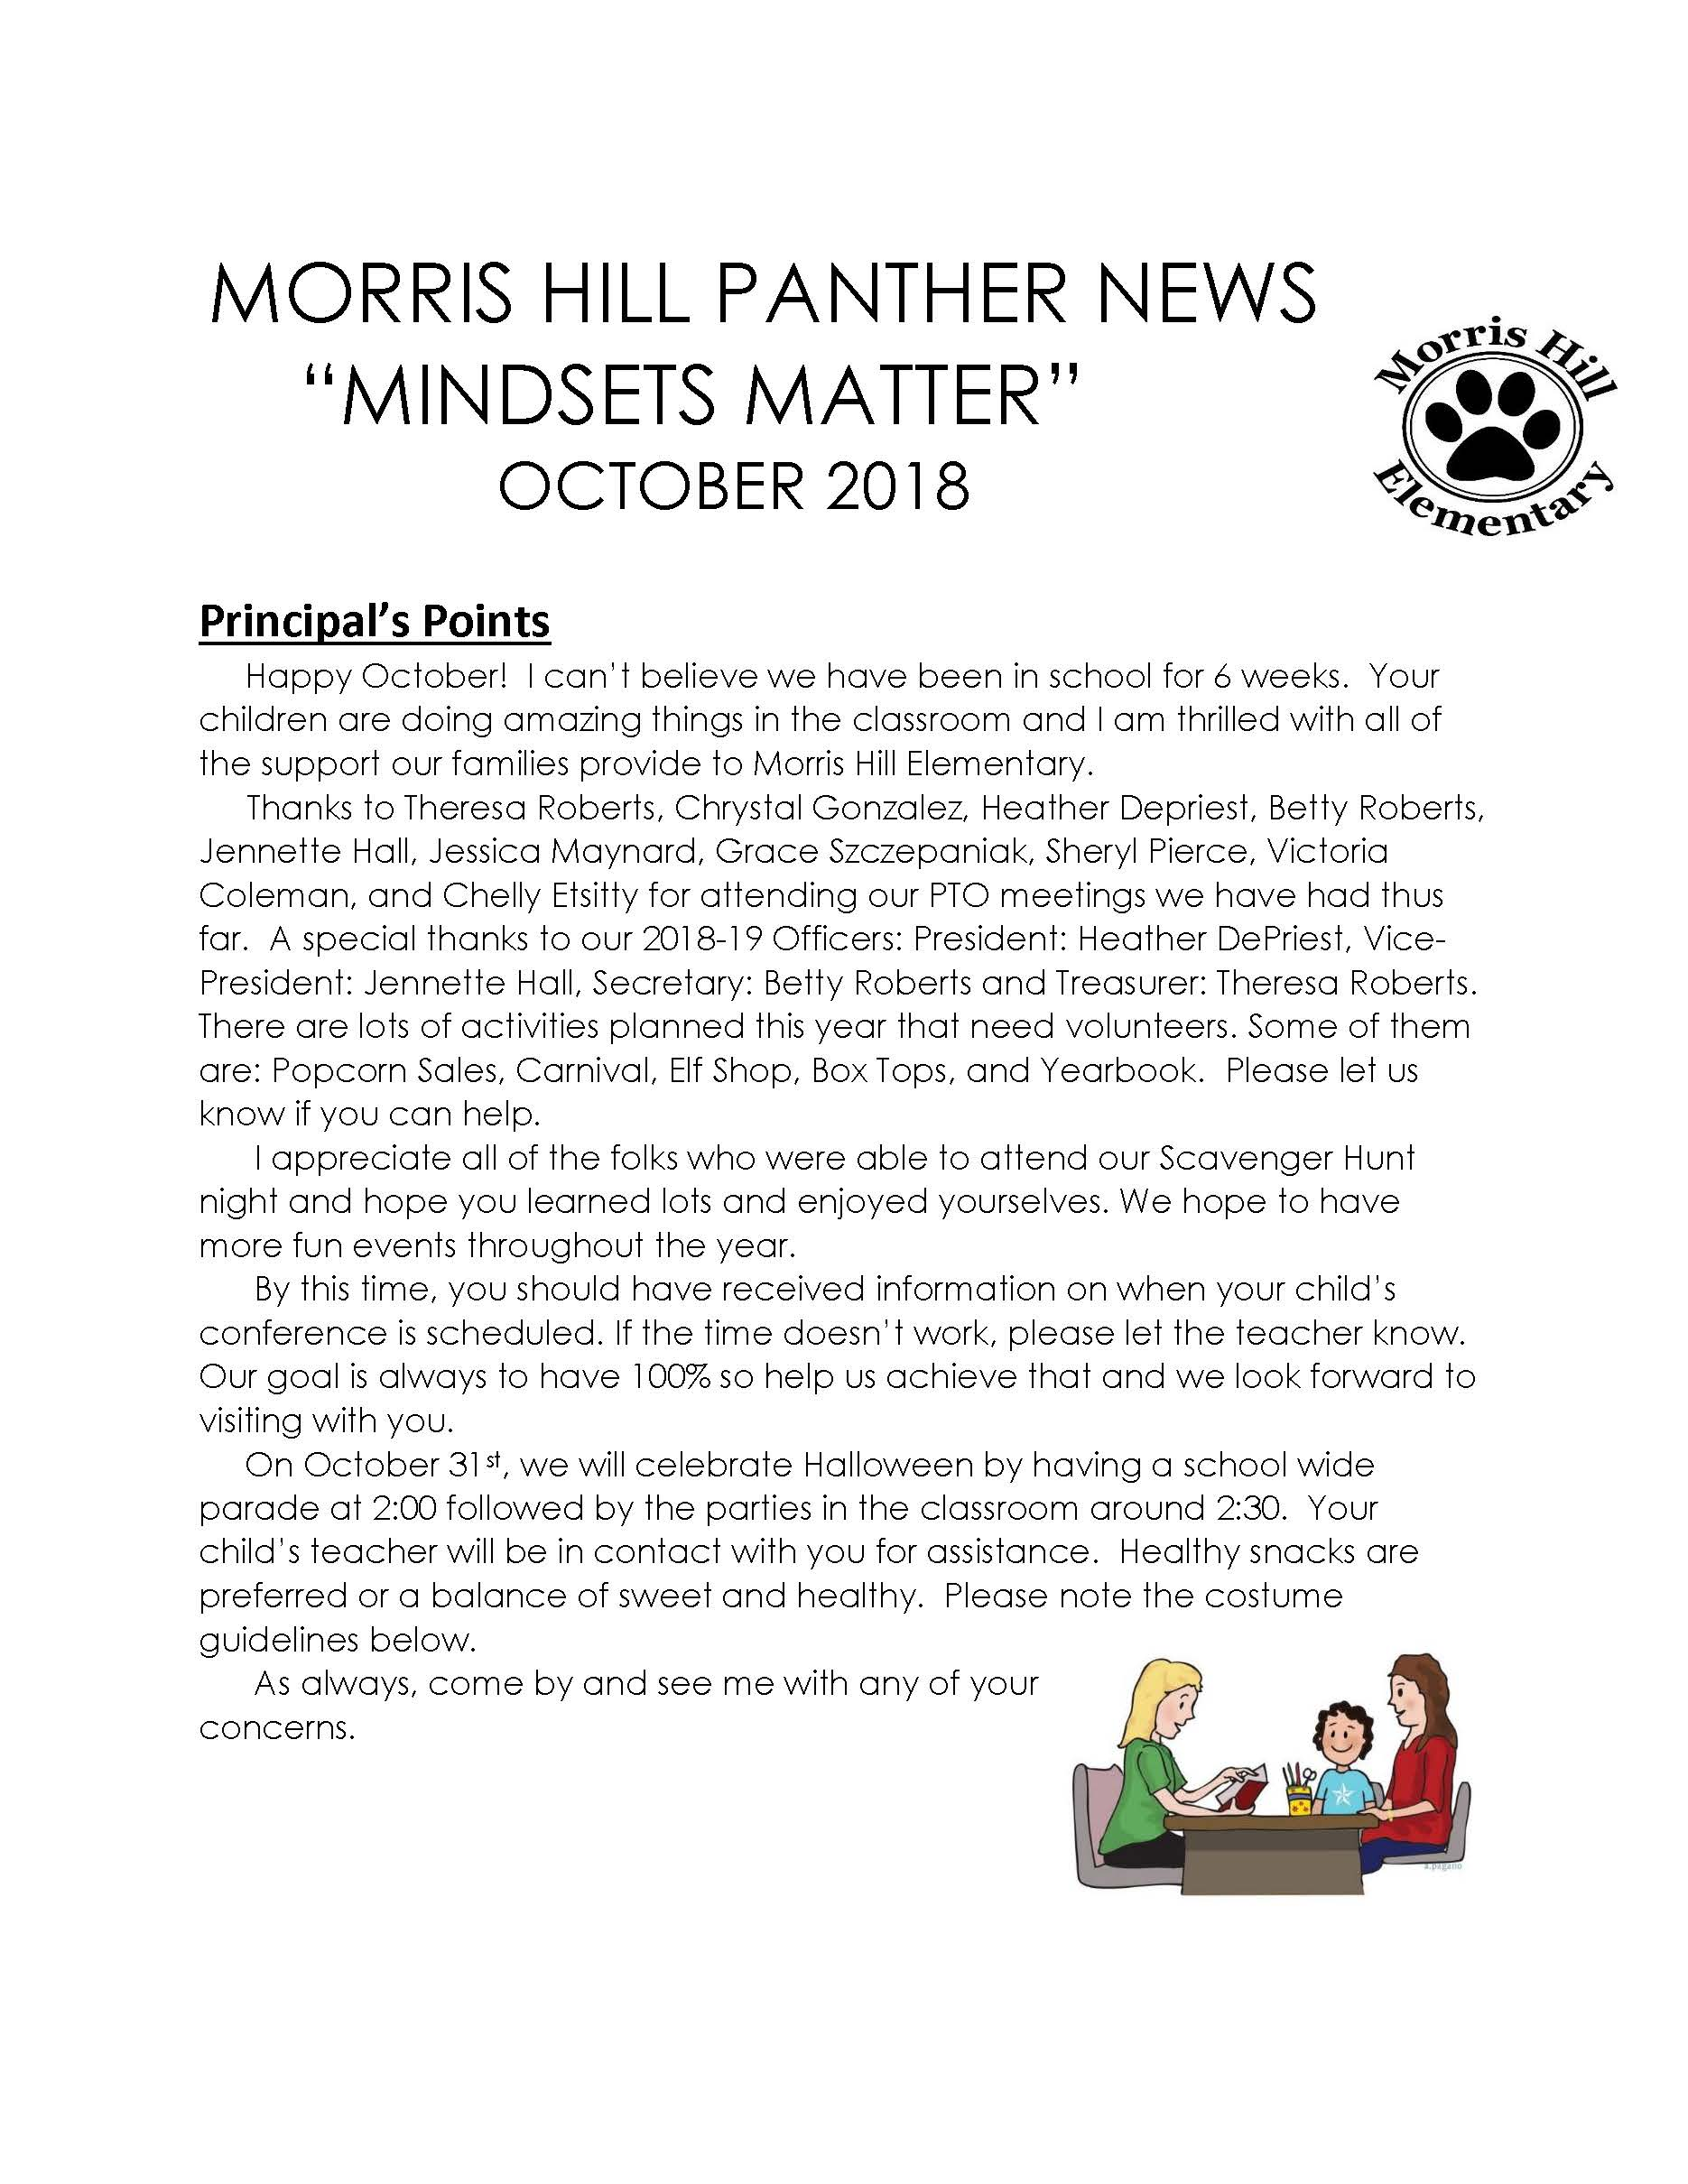 Newsletter with information from principal